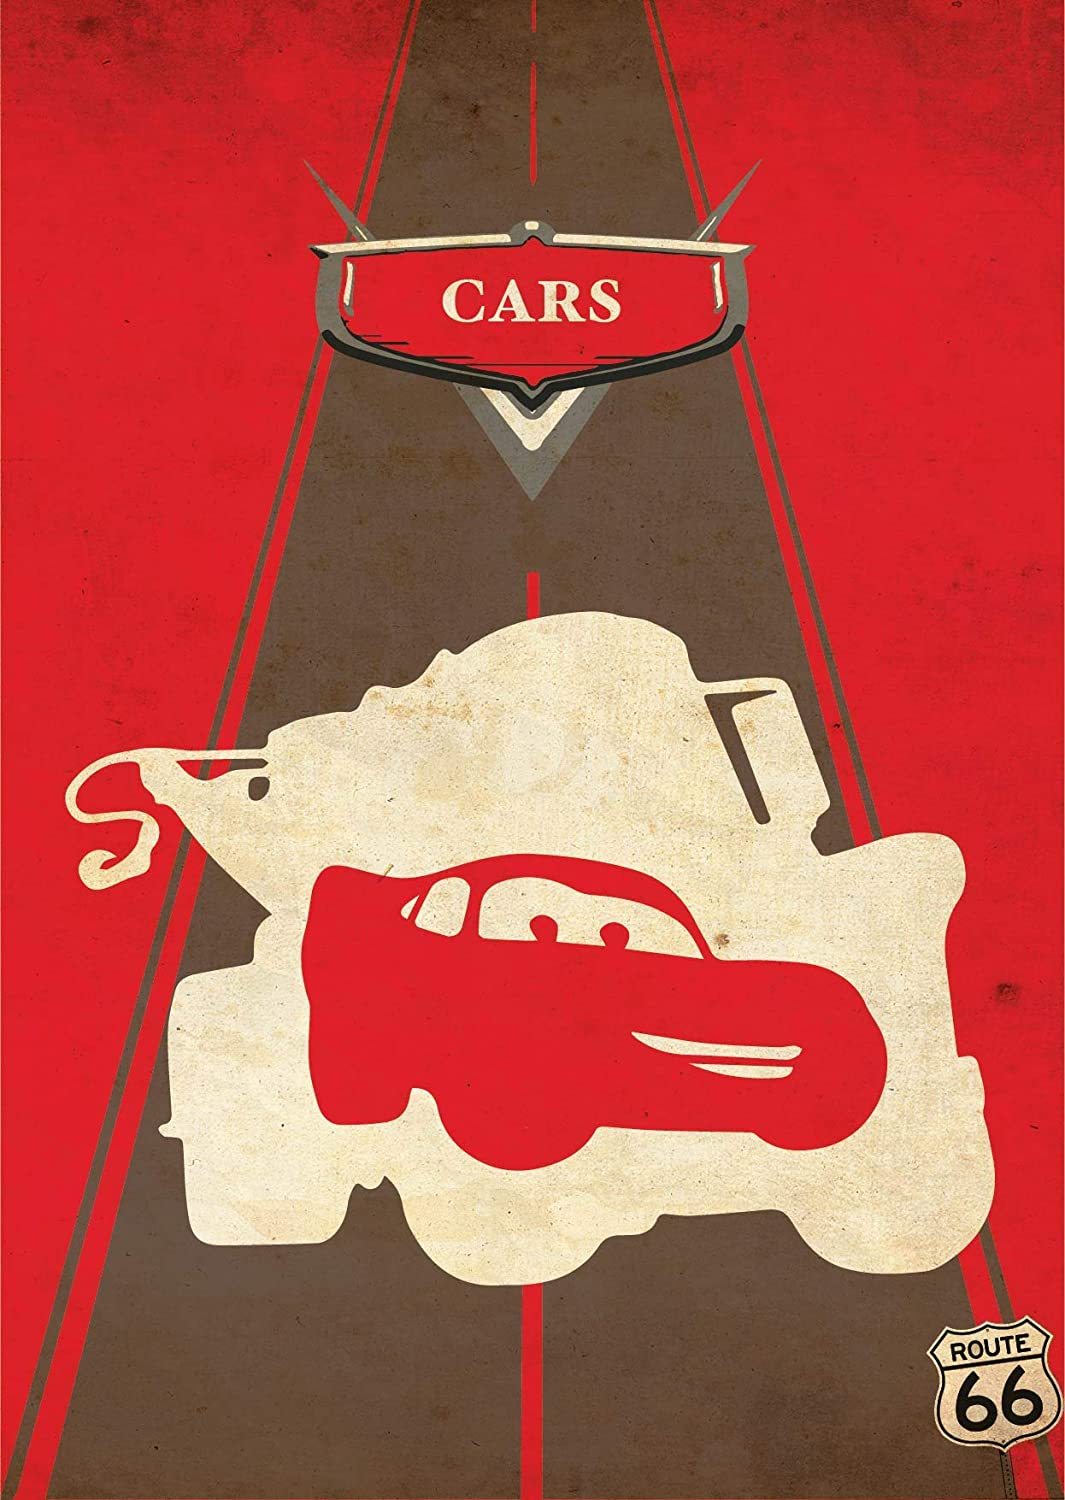 Amazon Com Cars Minimalist Poster Disney And Pixar Animation Alternative Print Cars Movie Lightning Mcqueen Home Decor Illustration Cinema Artwork Wall Art Hanging Cool Gift Handmade